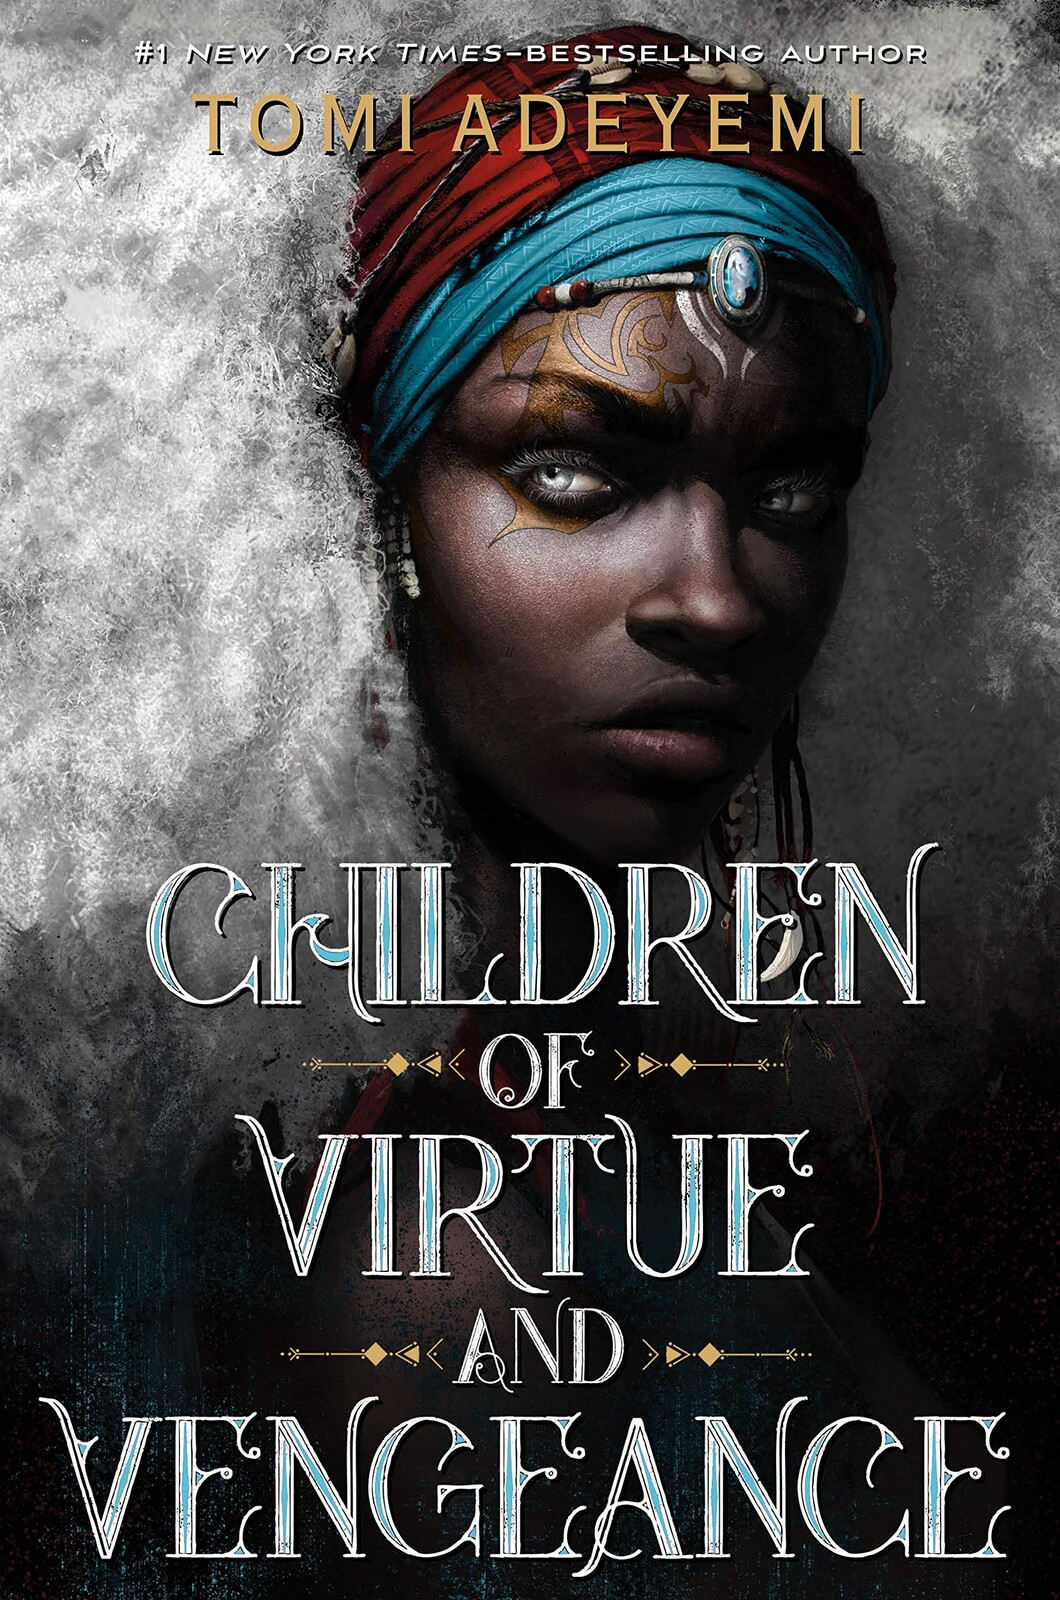 Cover Art - Children of Virtue and Vengeance by Tomi Ademeyi